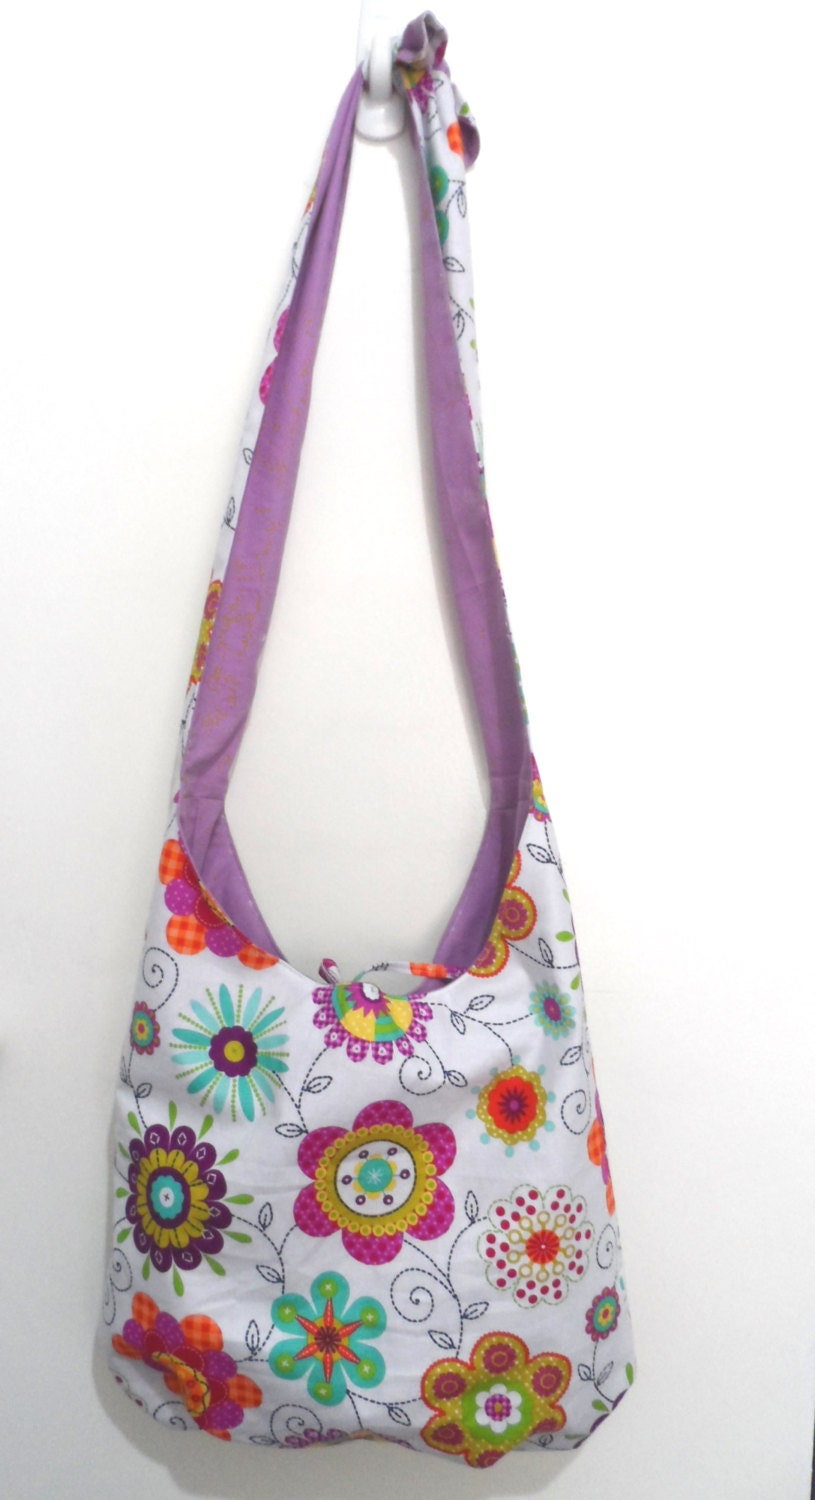 Hobo Bag Cross Body Bag Sling Bag Hippie Purse Hobo Purse Boho